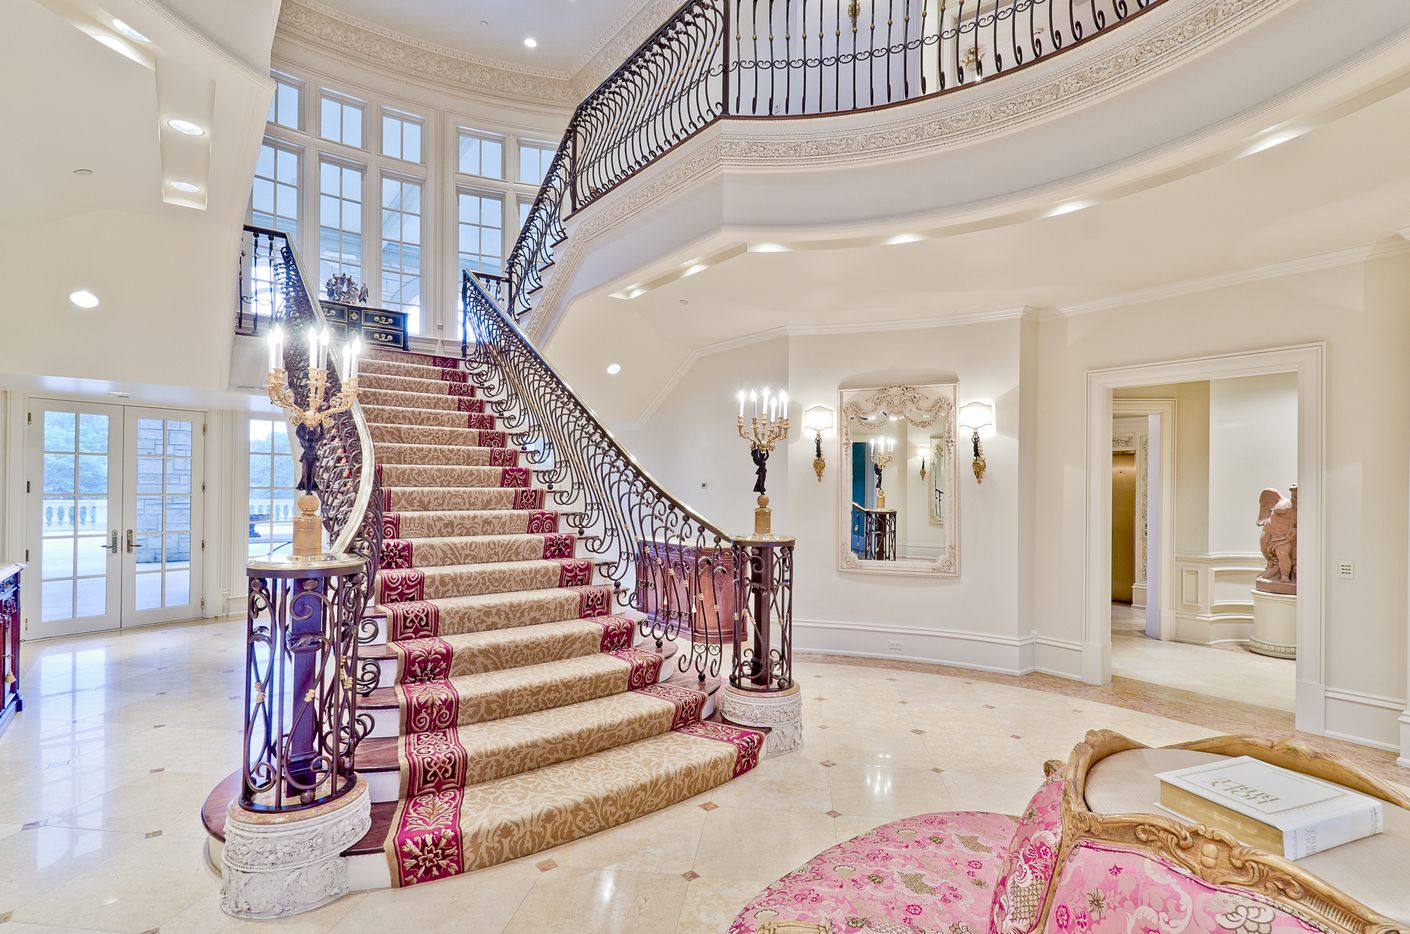 The Champ d'Or mansion took five years to plan and build.